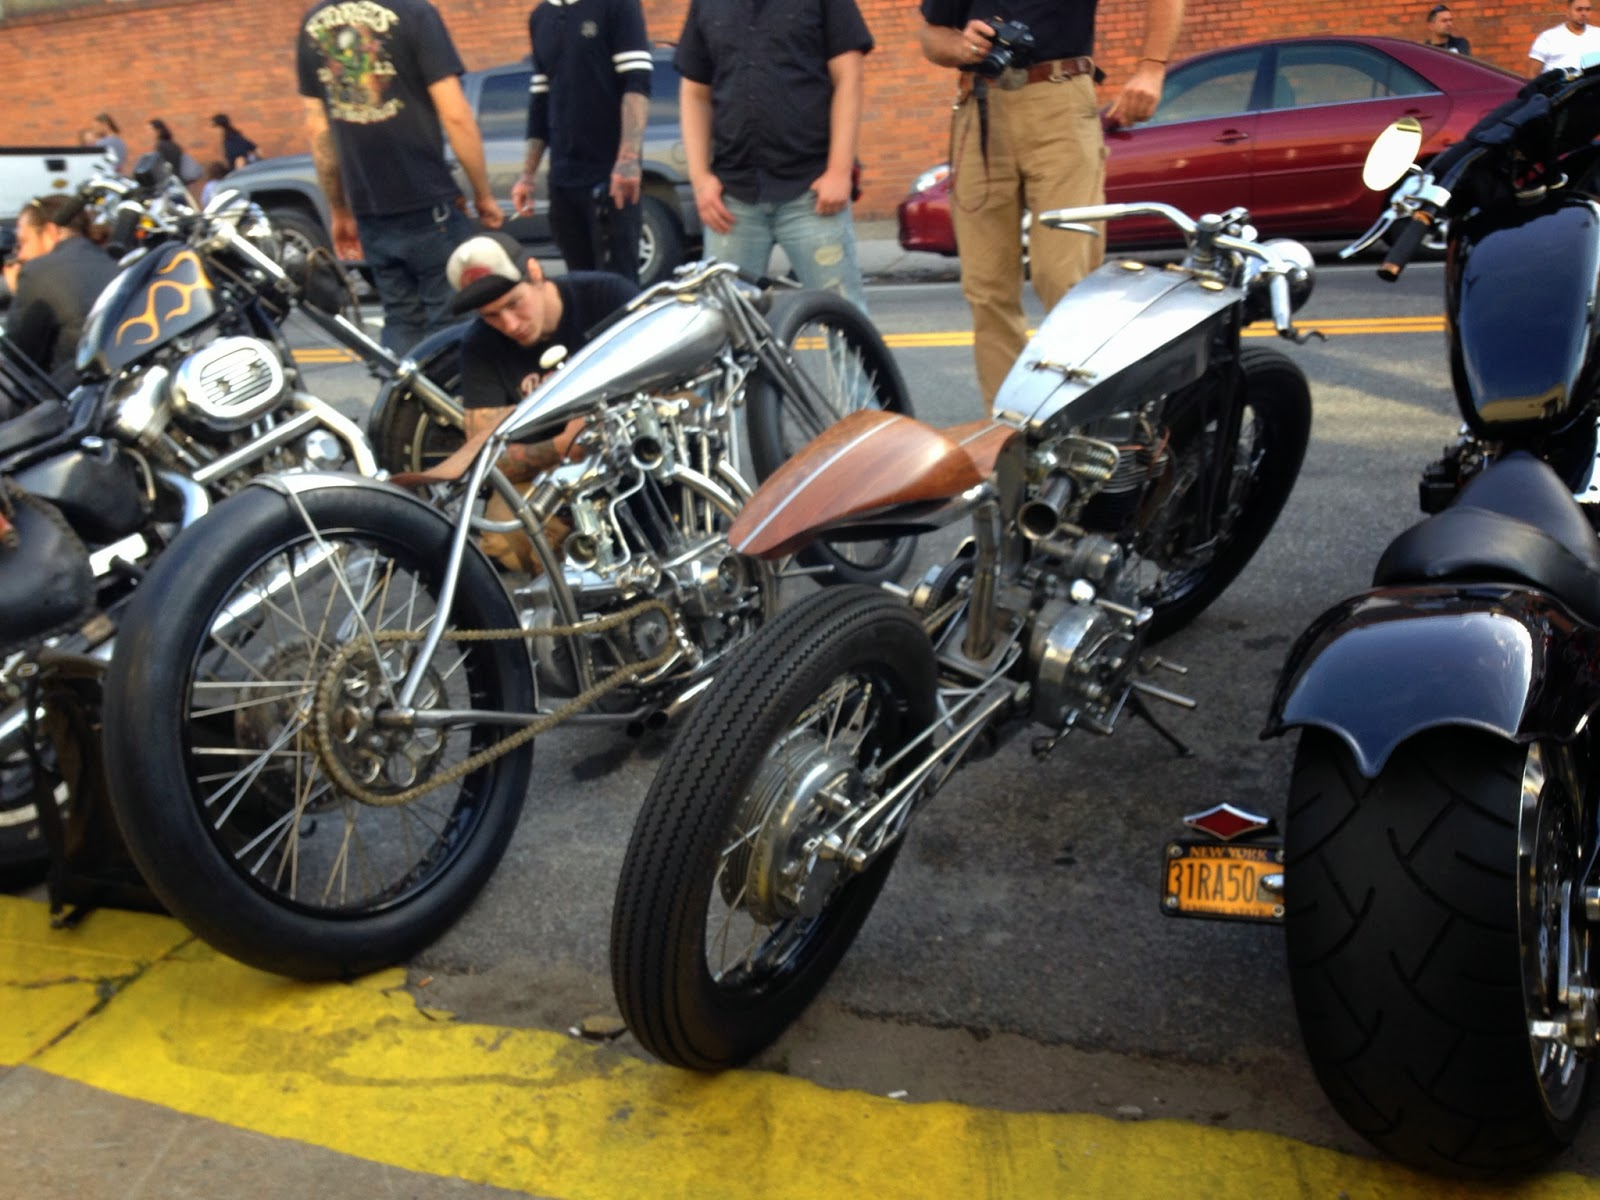 Incredible Retro Custom Cafe Racers at the Brooklyn Invitational Custom Bike Show 2013 3